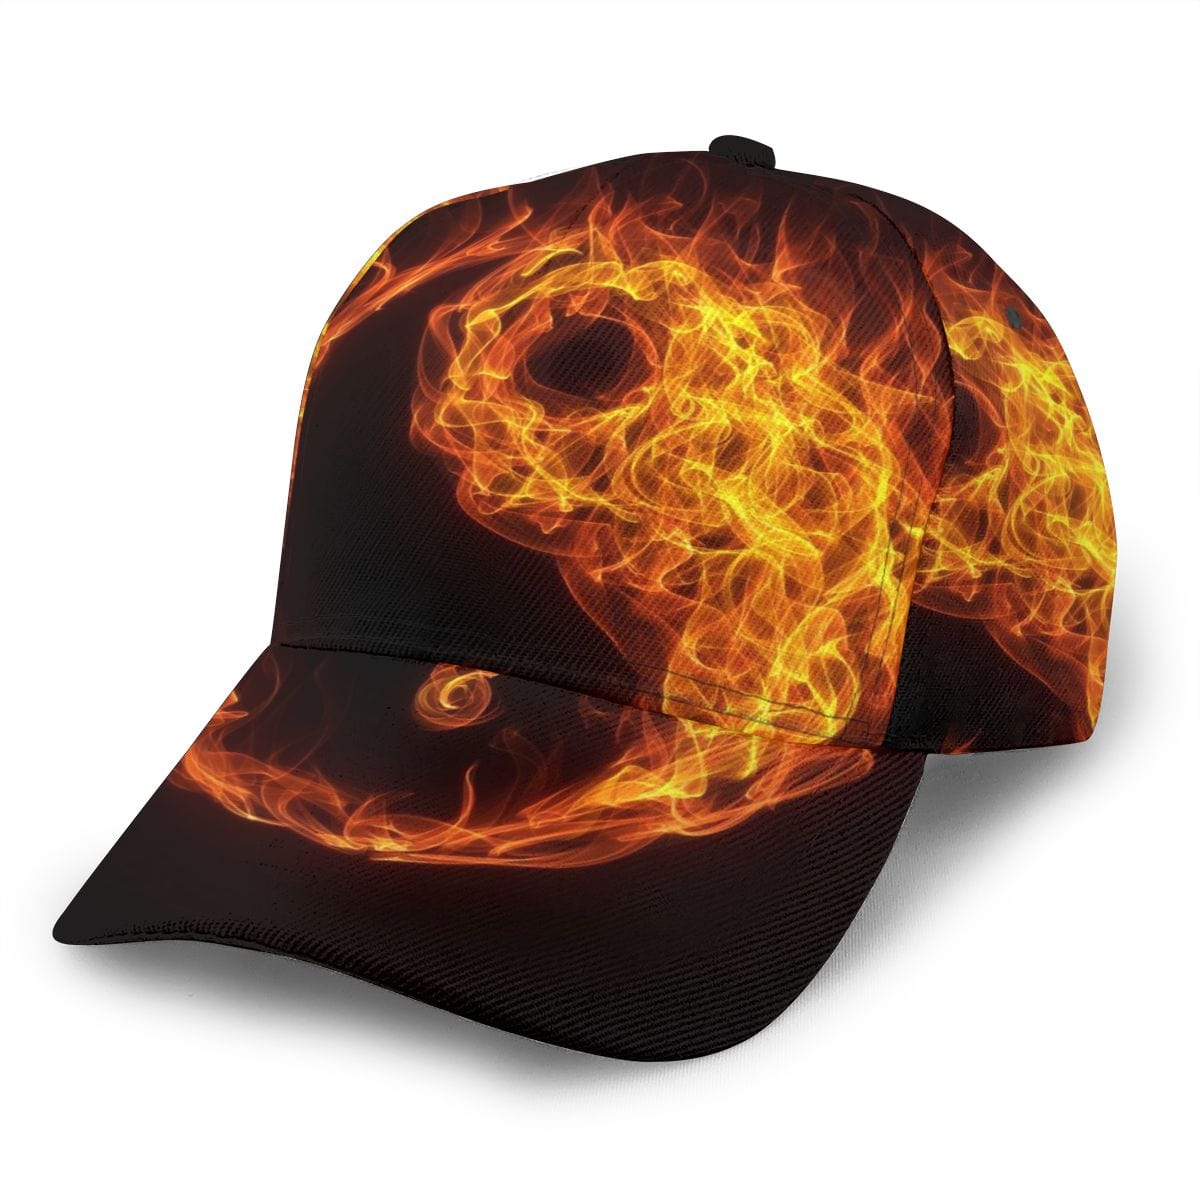 Black Hat on Fire